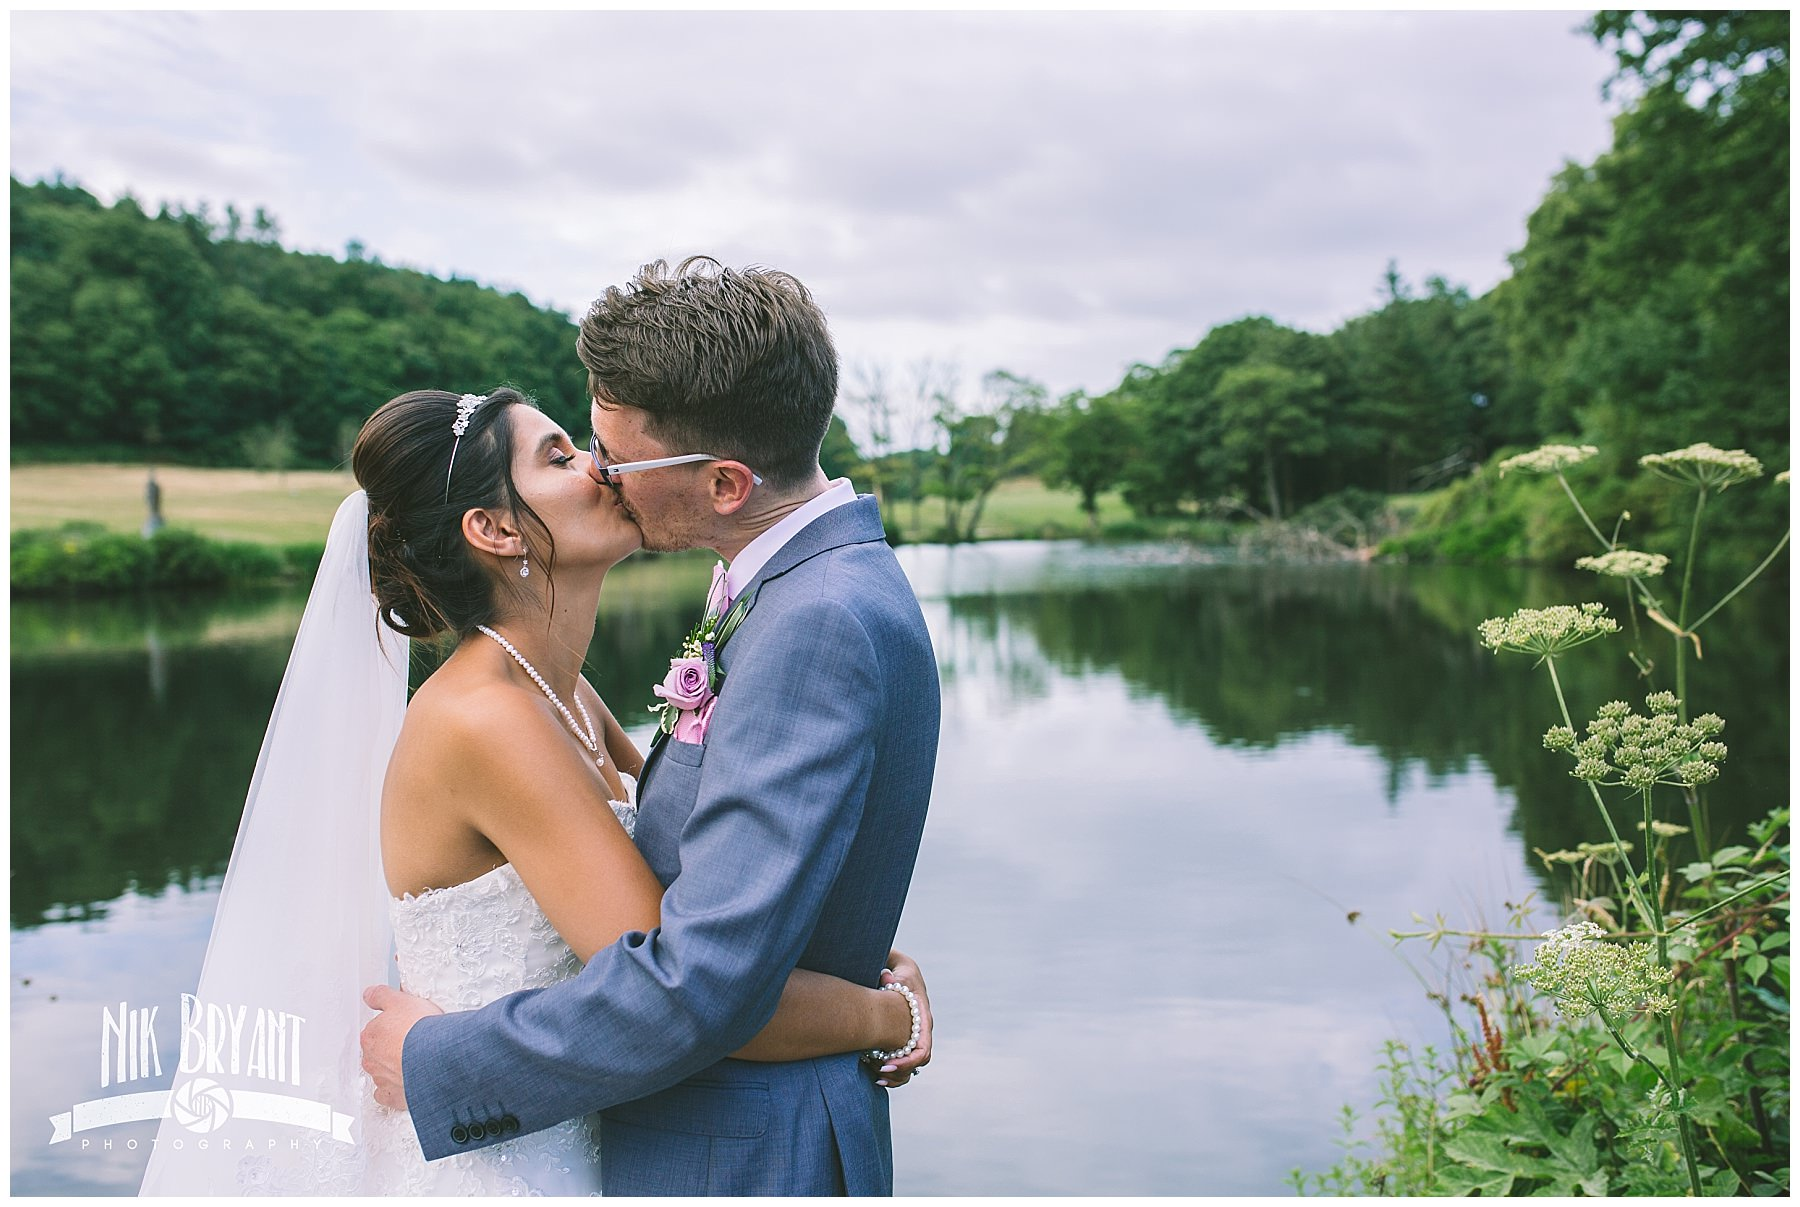 Shrigley Hall Wedding Photography by the lake